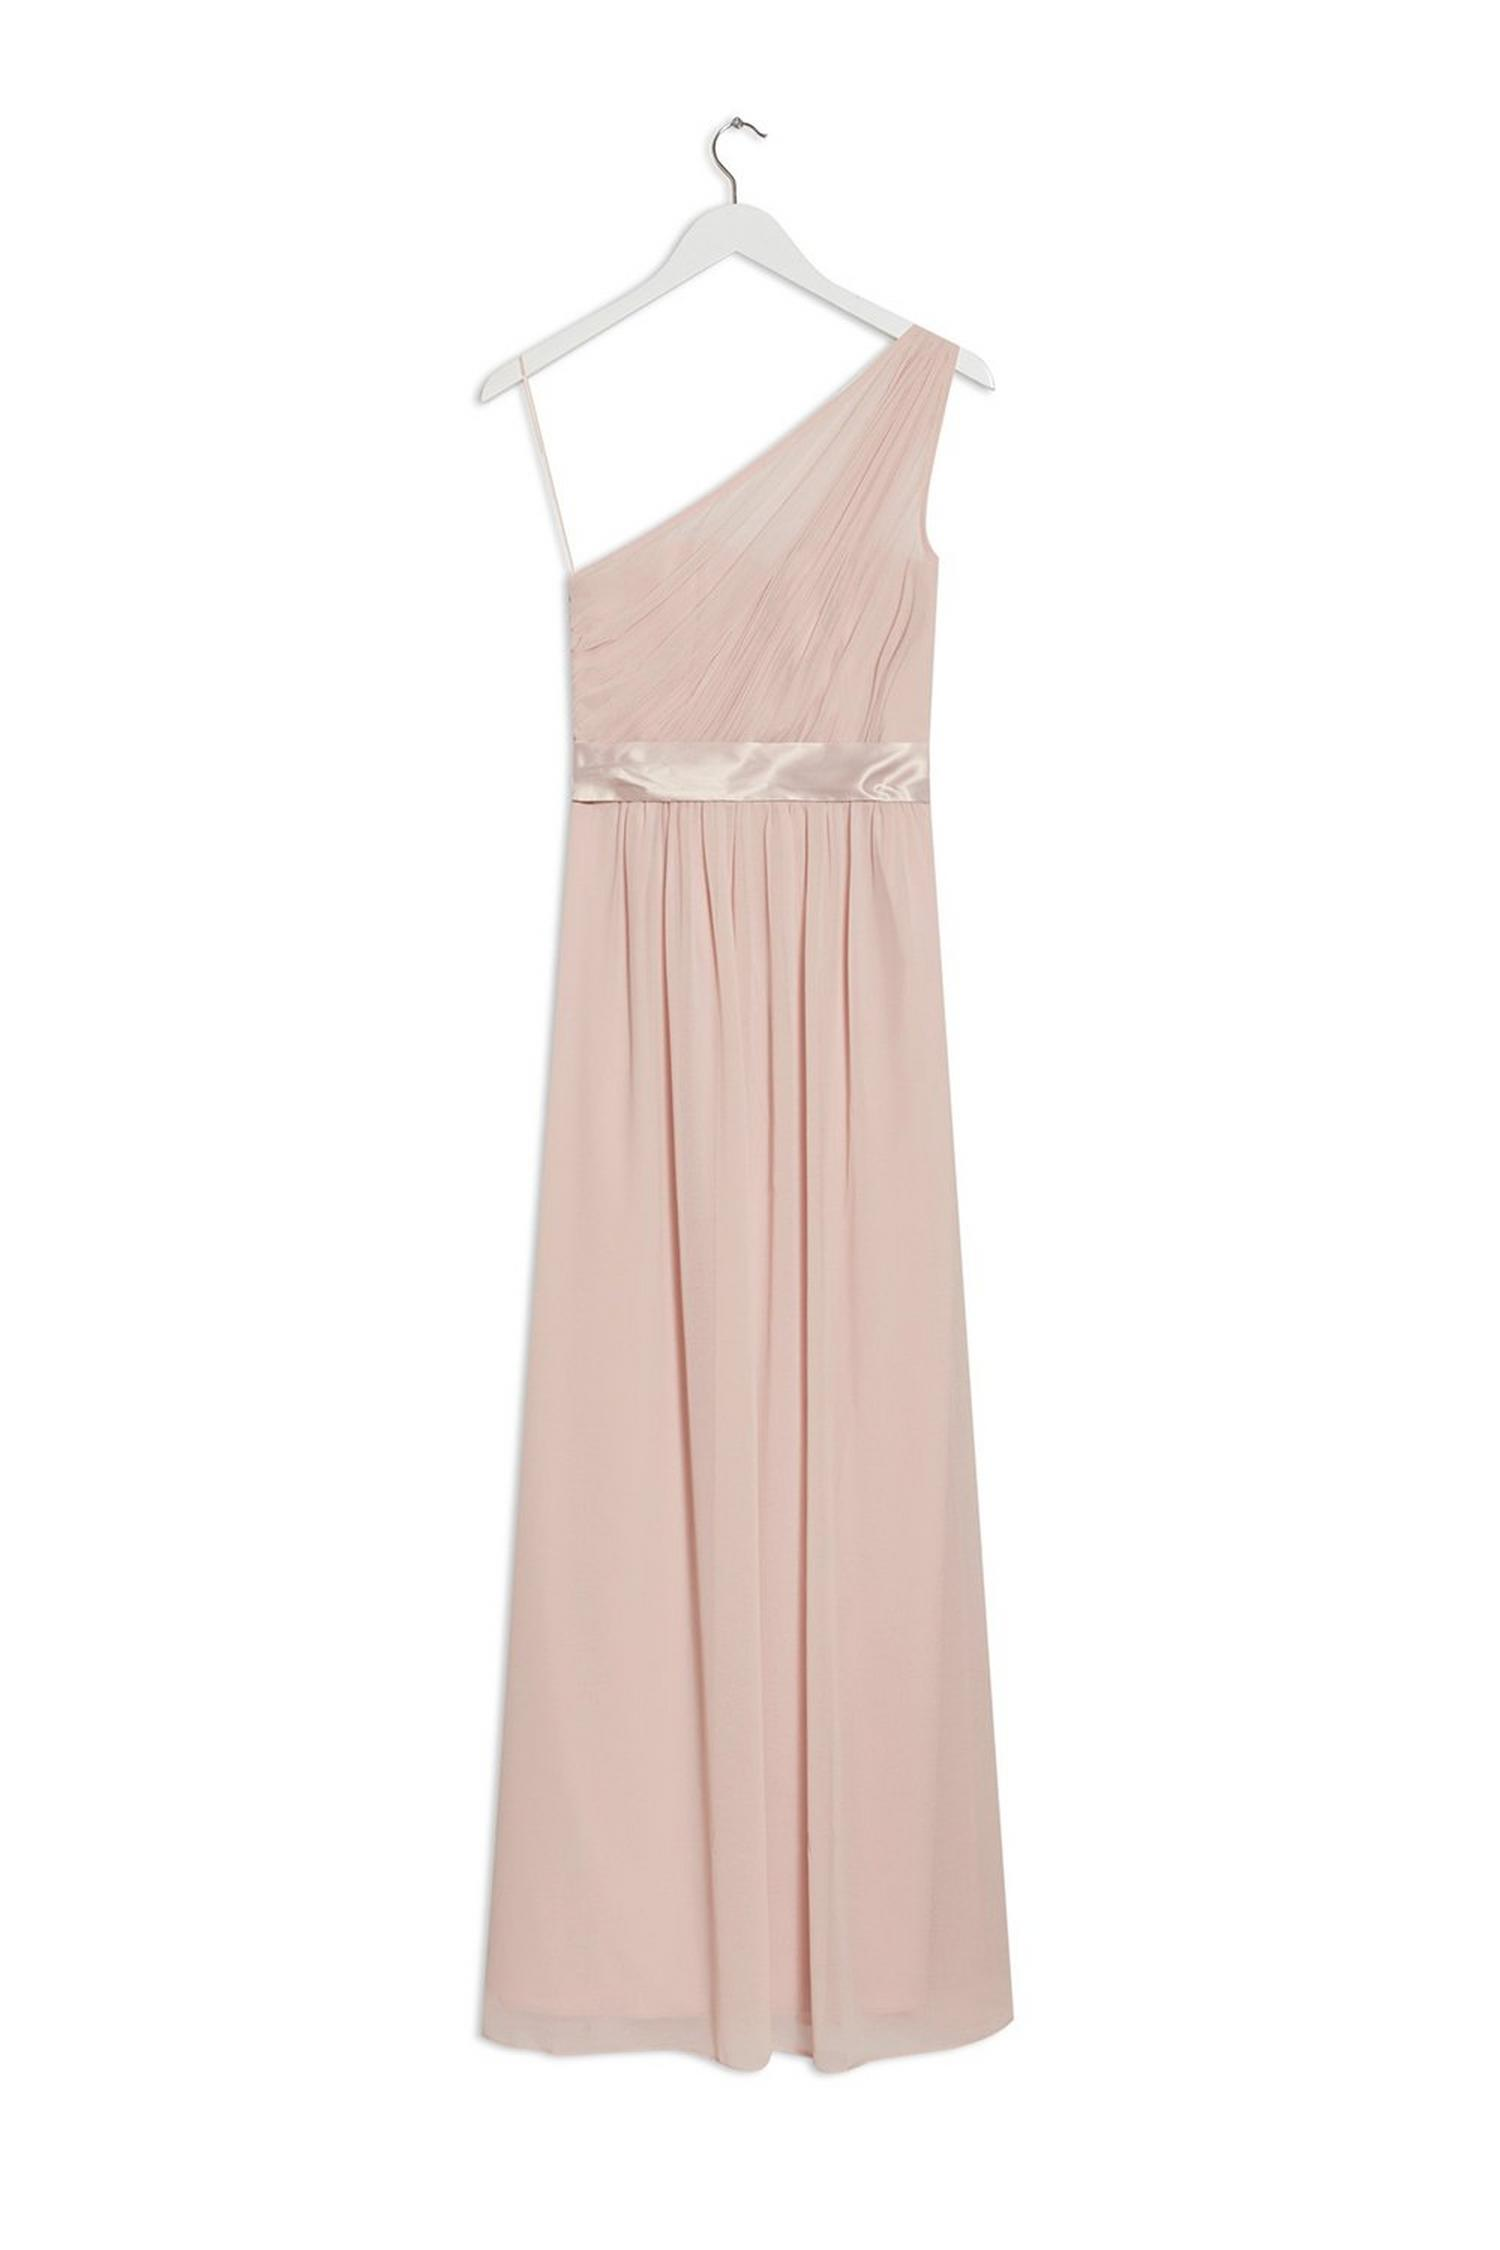 153 Blush Sadie One Shoulder Maxi Dress image number 1